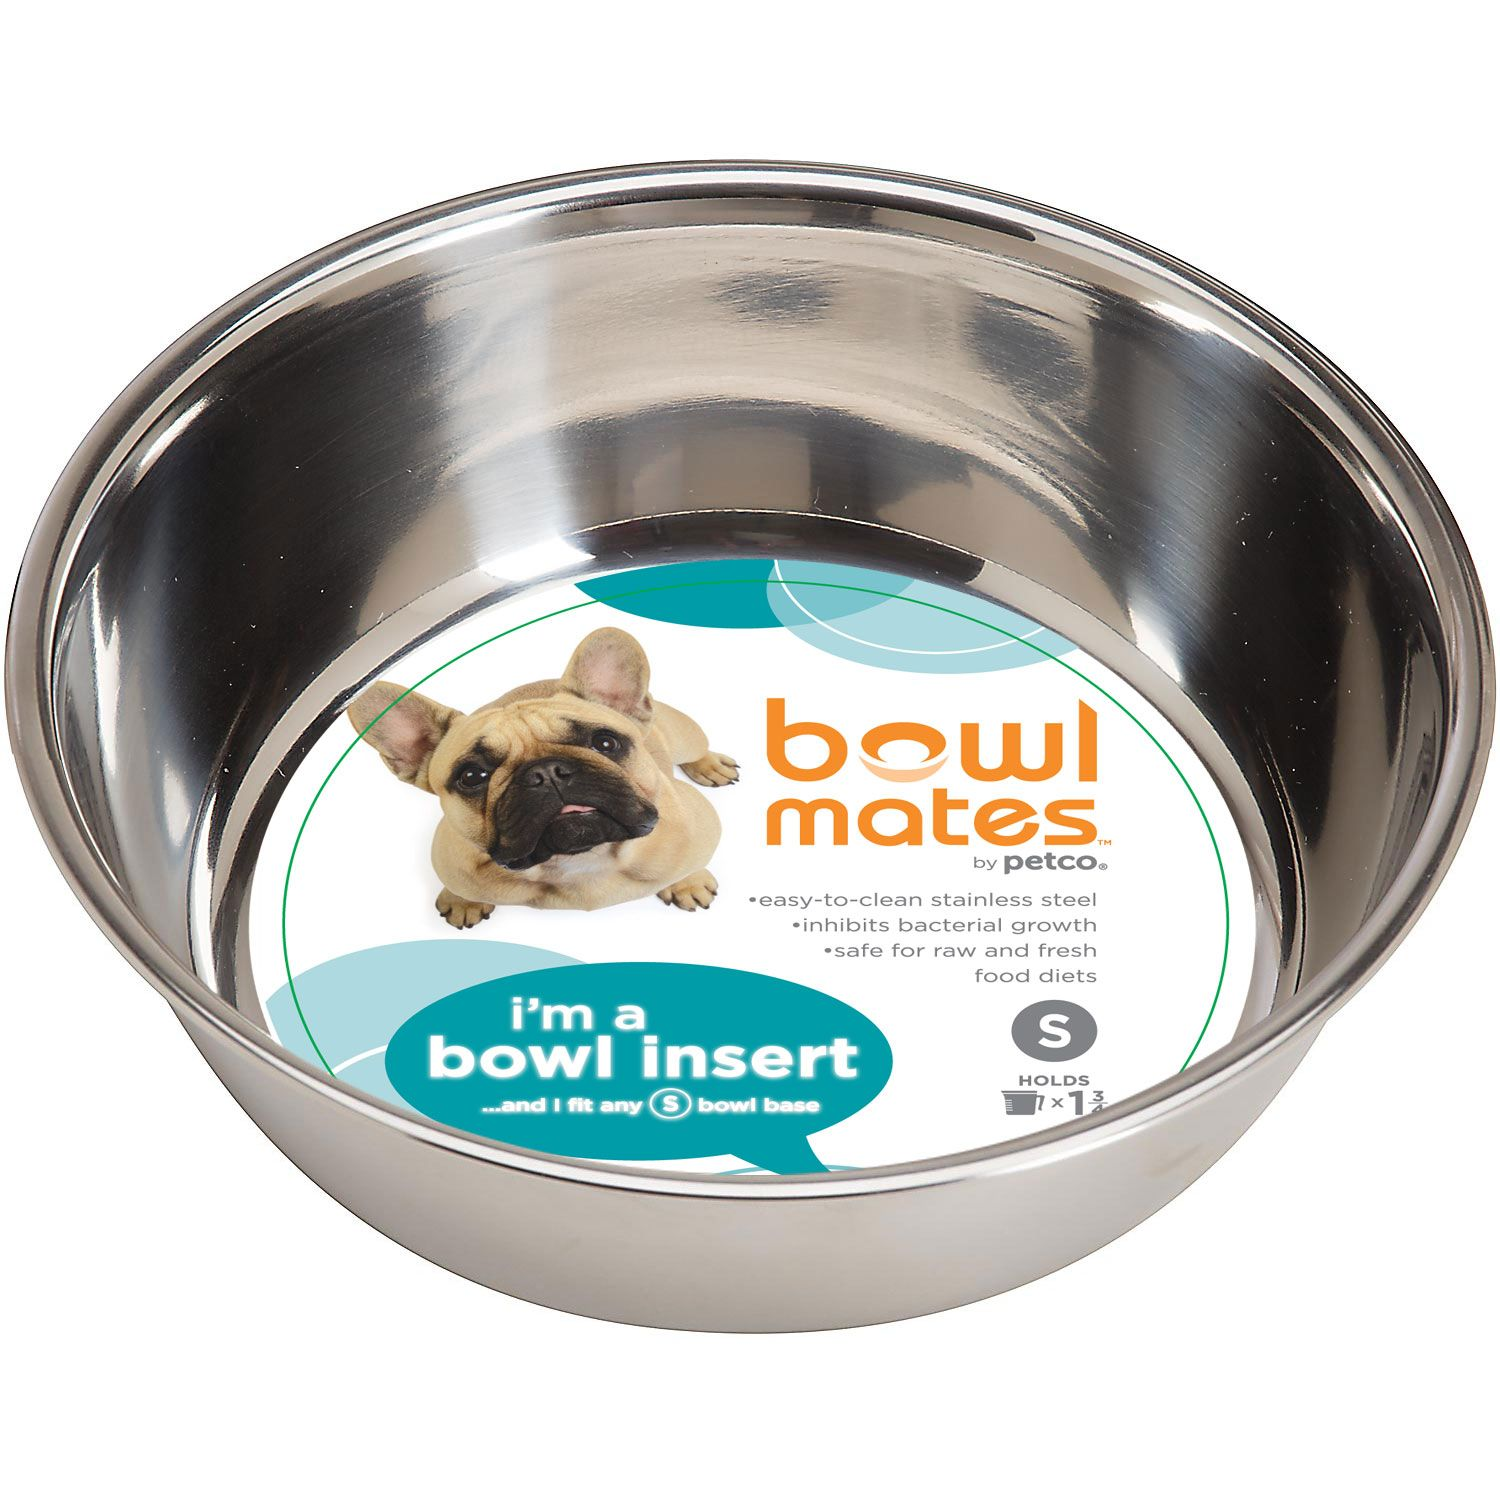 Bowlmates By Petco Small Stainless Steel Bowl Insert X2 Kitty